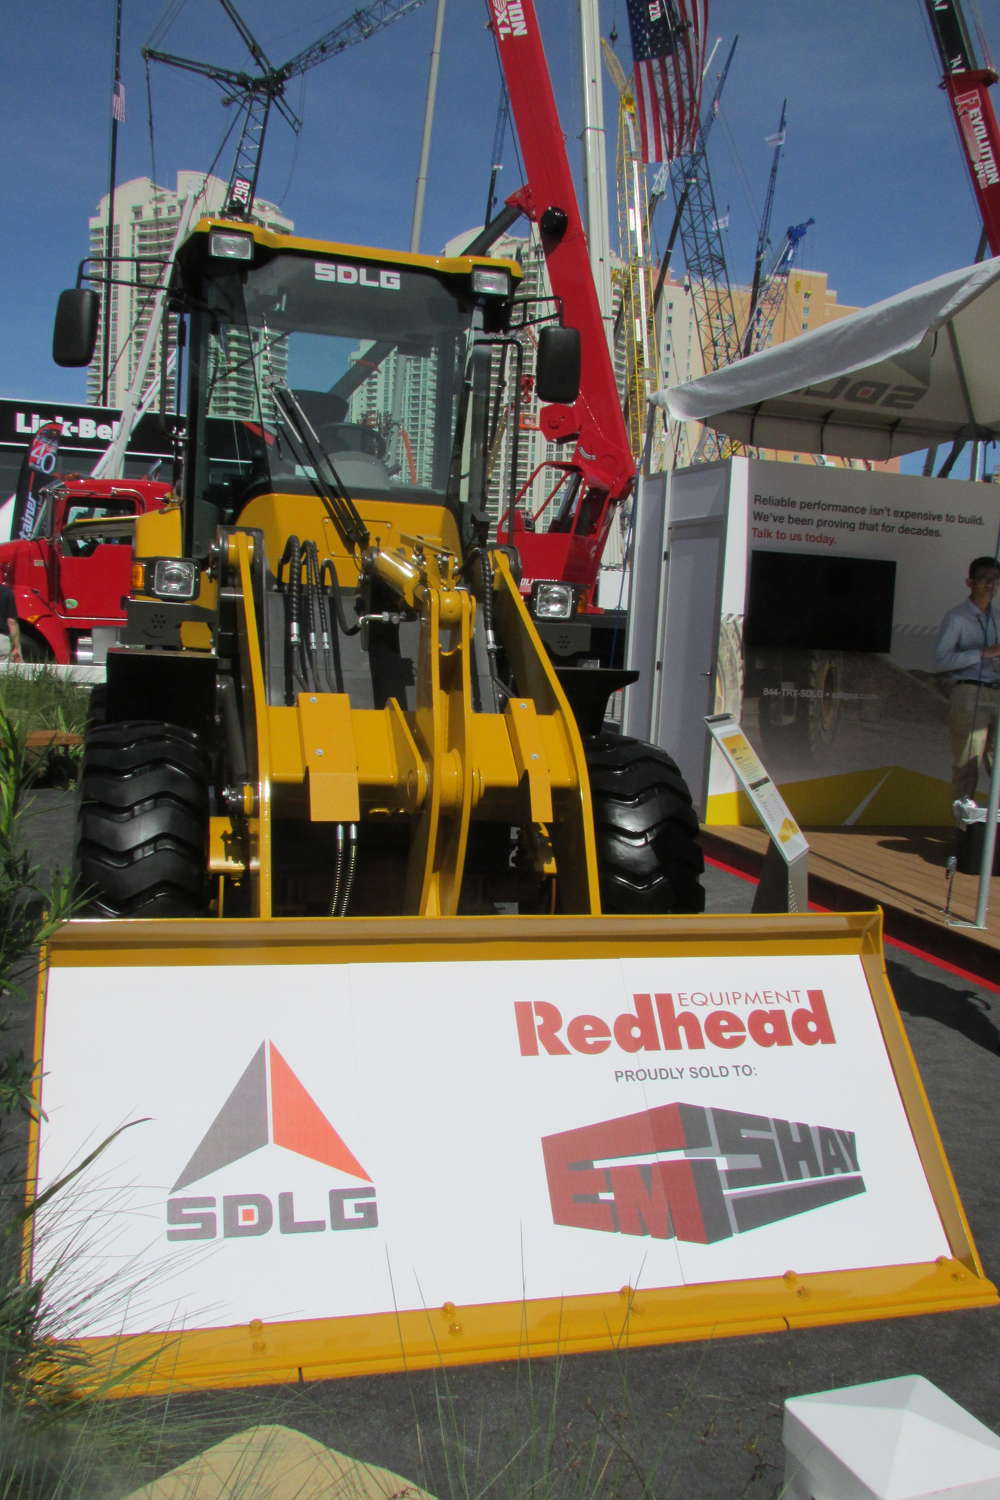 SDLG featured its wheel loaders at its exhibit in the Gold Lot at ConExpo